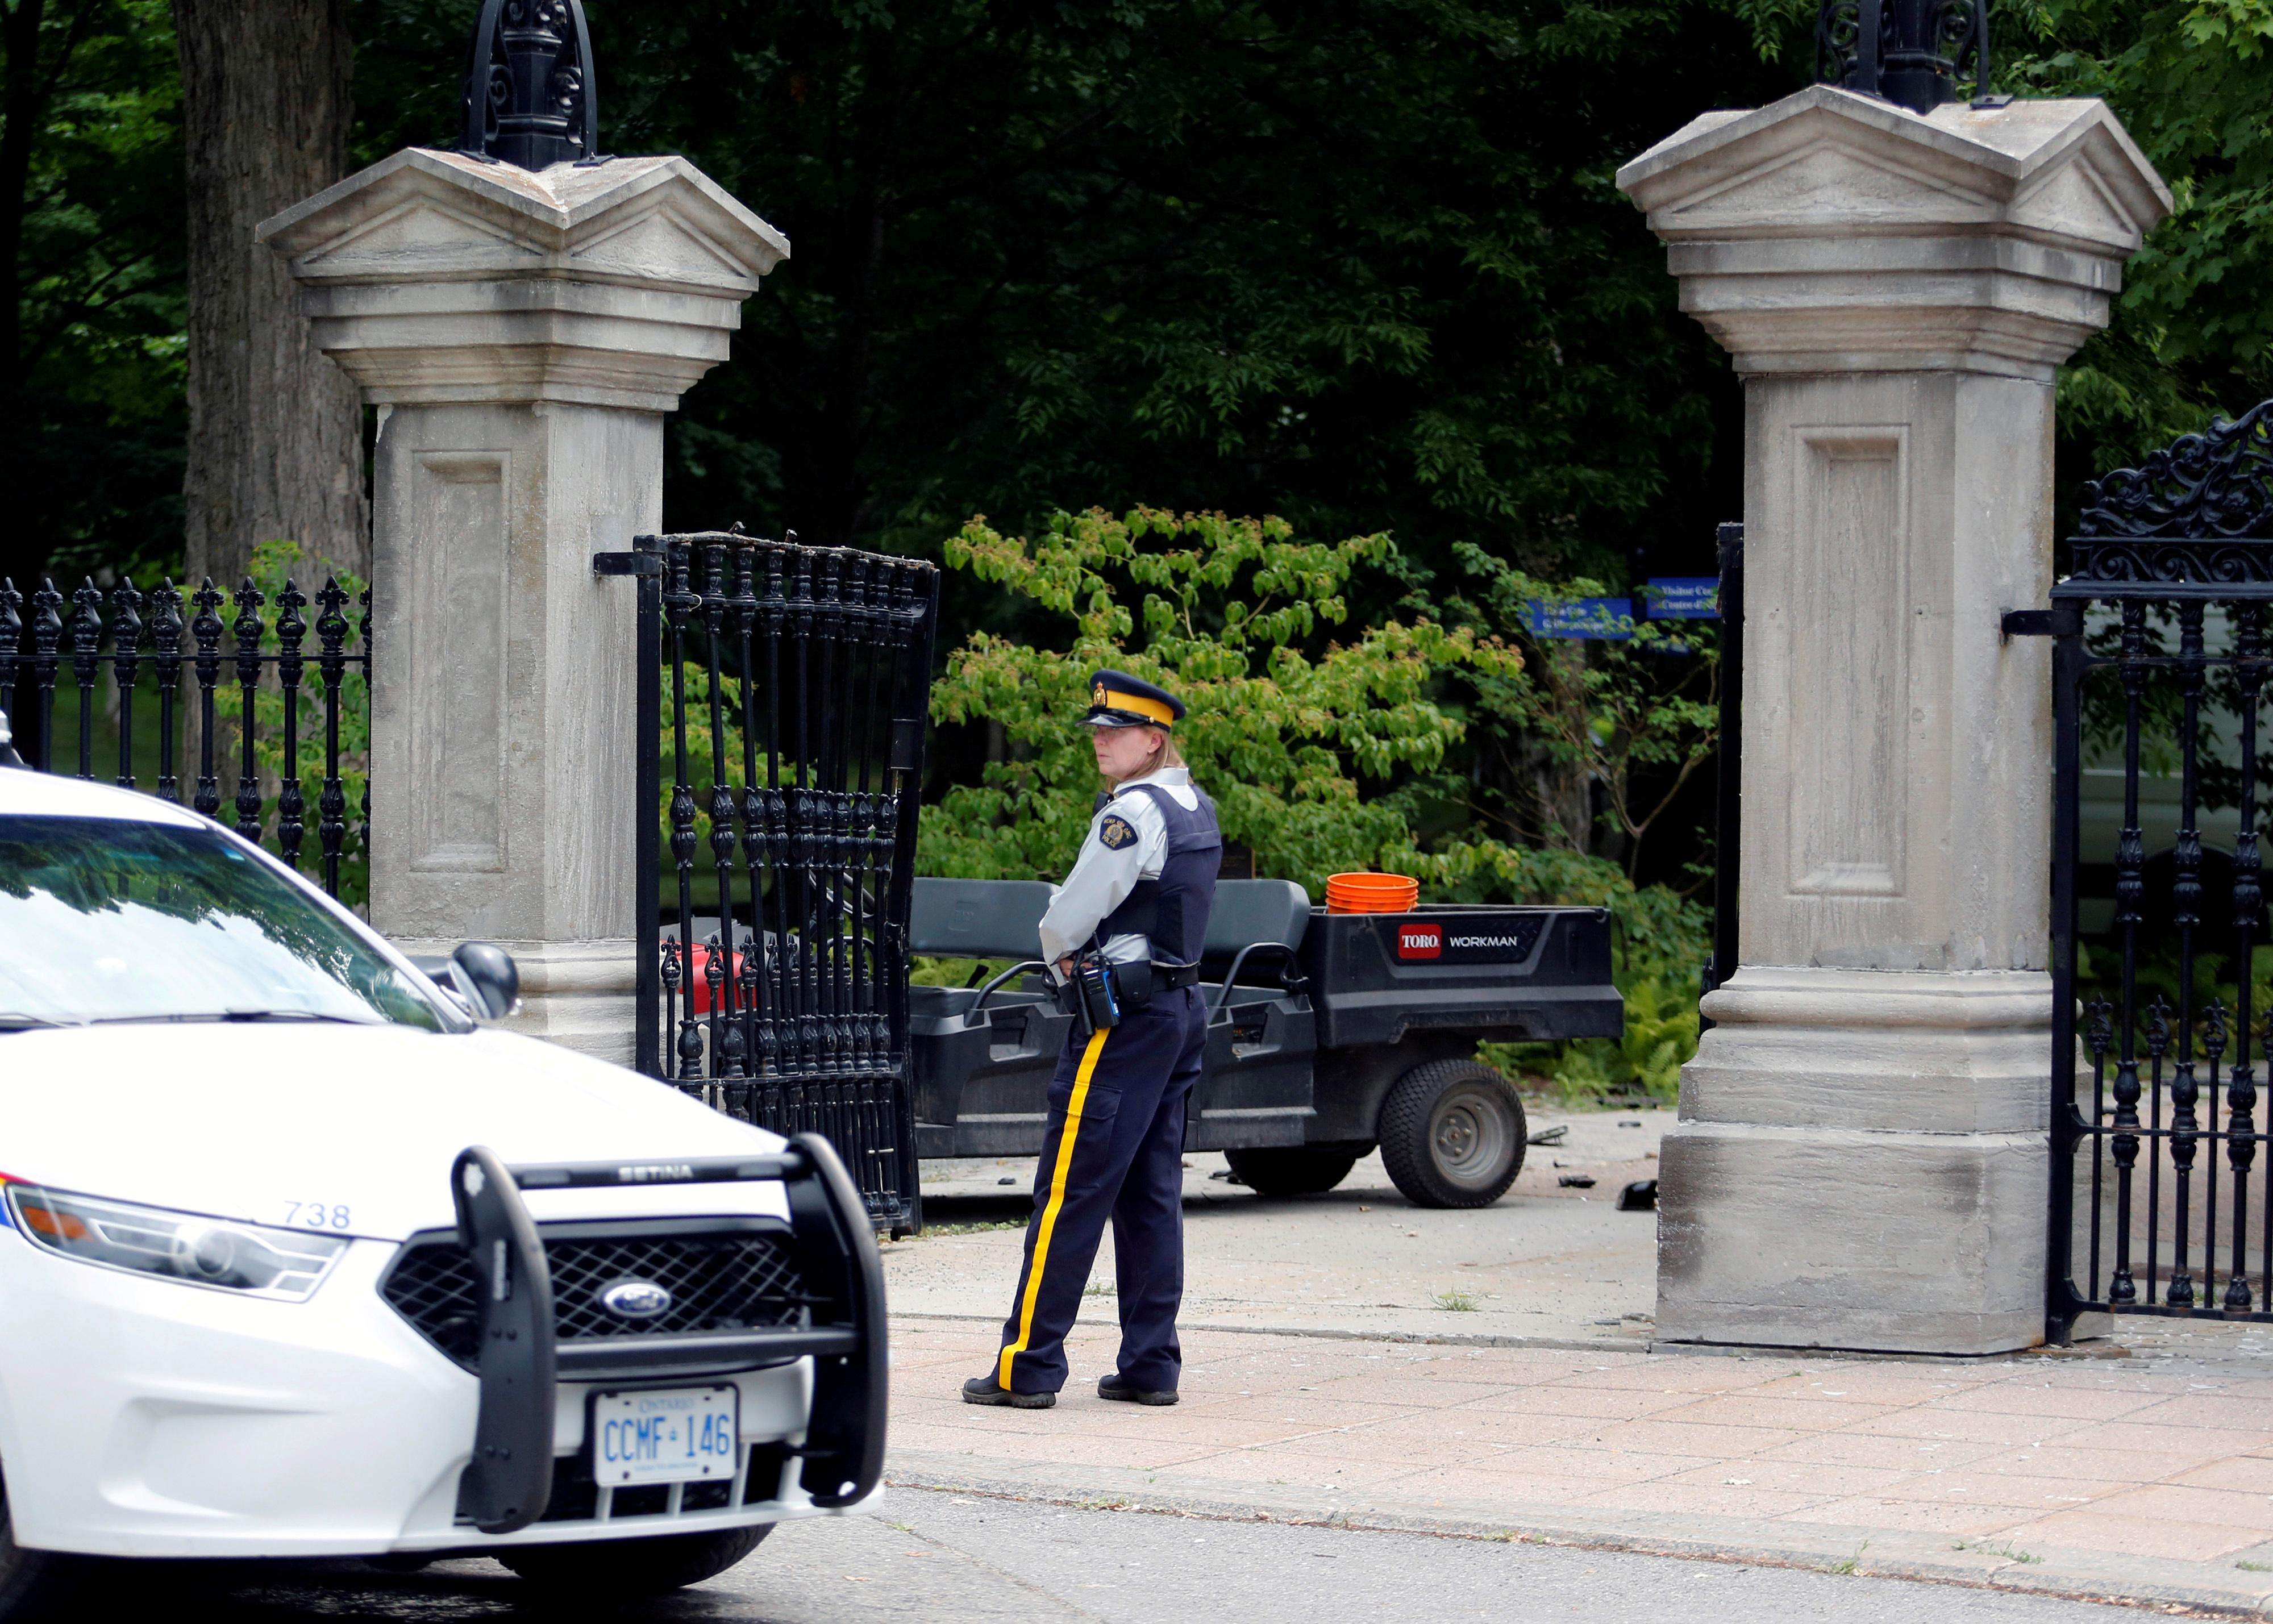 Armed military man who rammed gates near Canada PM Trudeau's residence acted alone: police